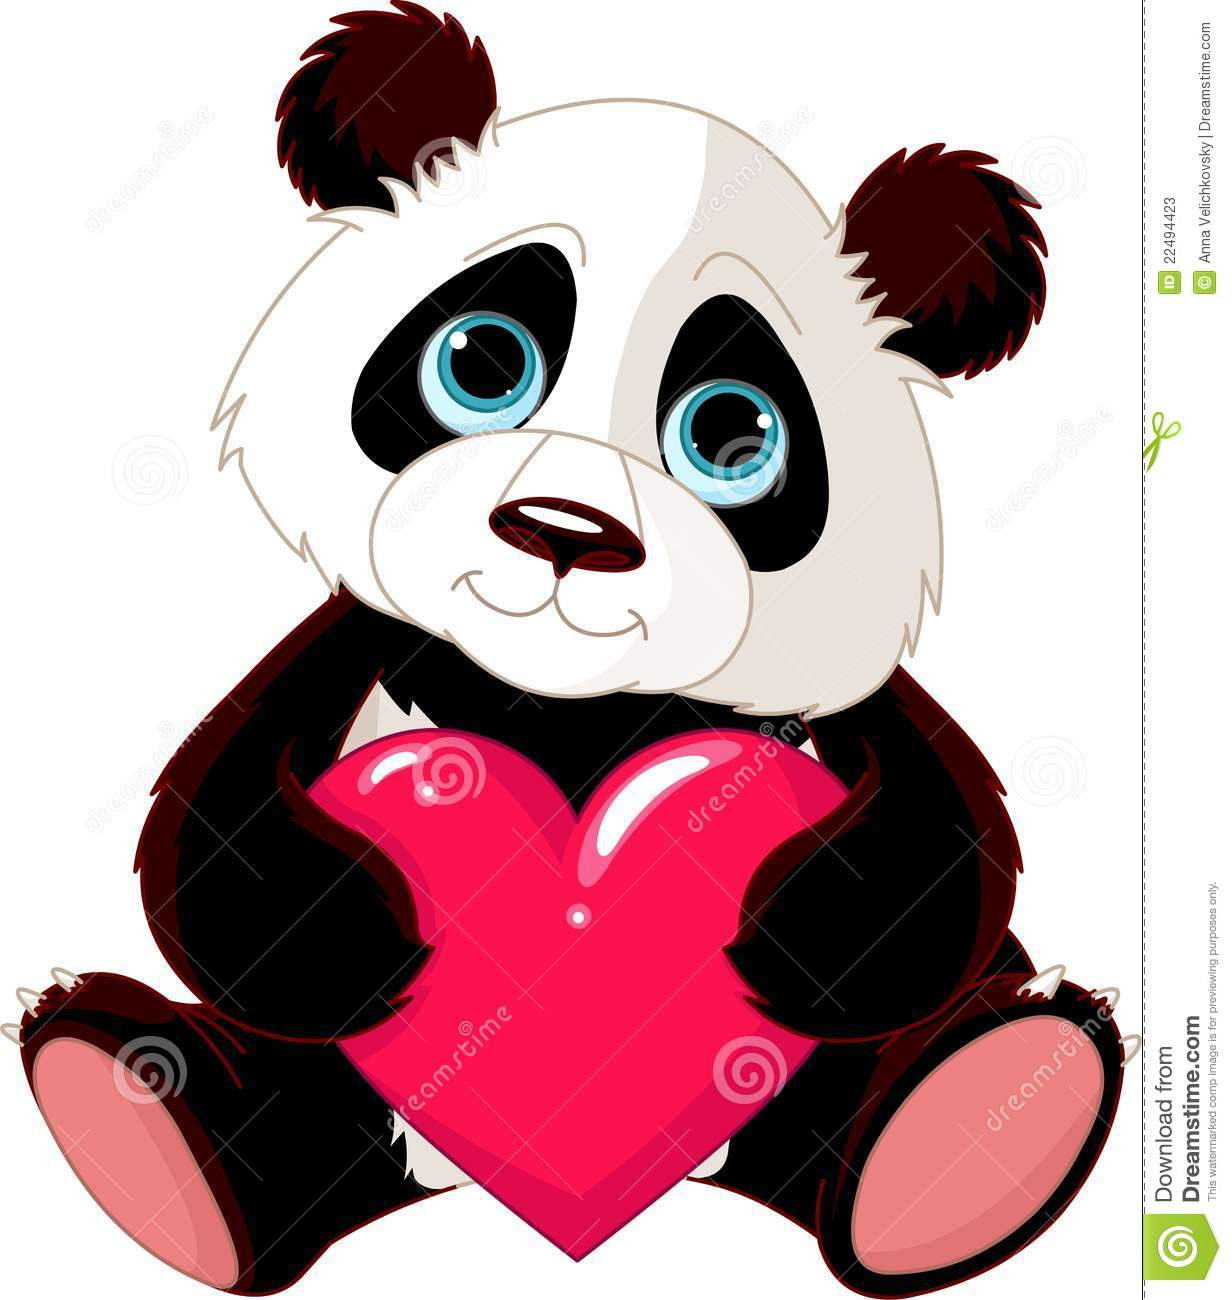 Cute Panda With Heart Stock Photos - Image: 22494423